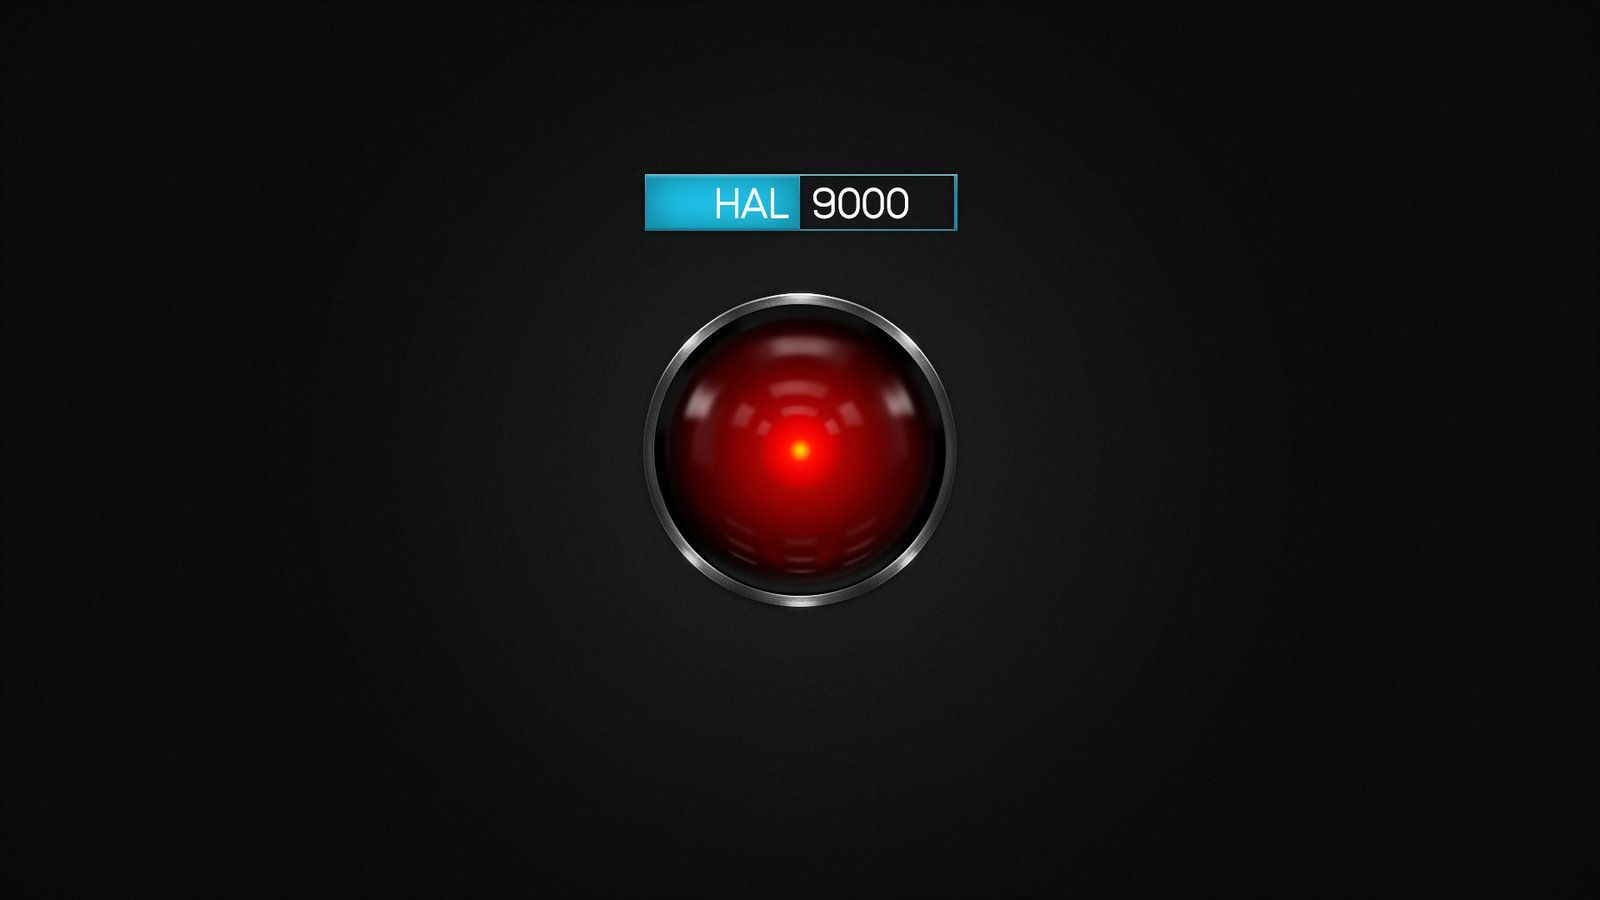 Hal Wallpapers Wallpaper Cave Nest Thermostat Bathroom Scale Hd Wallpaper